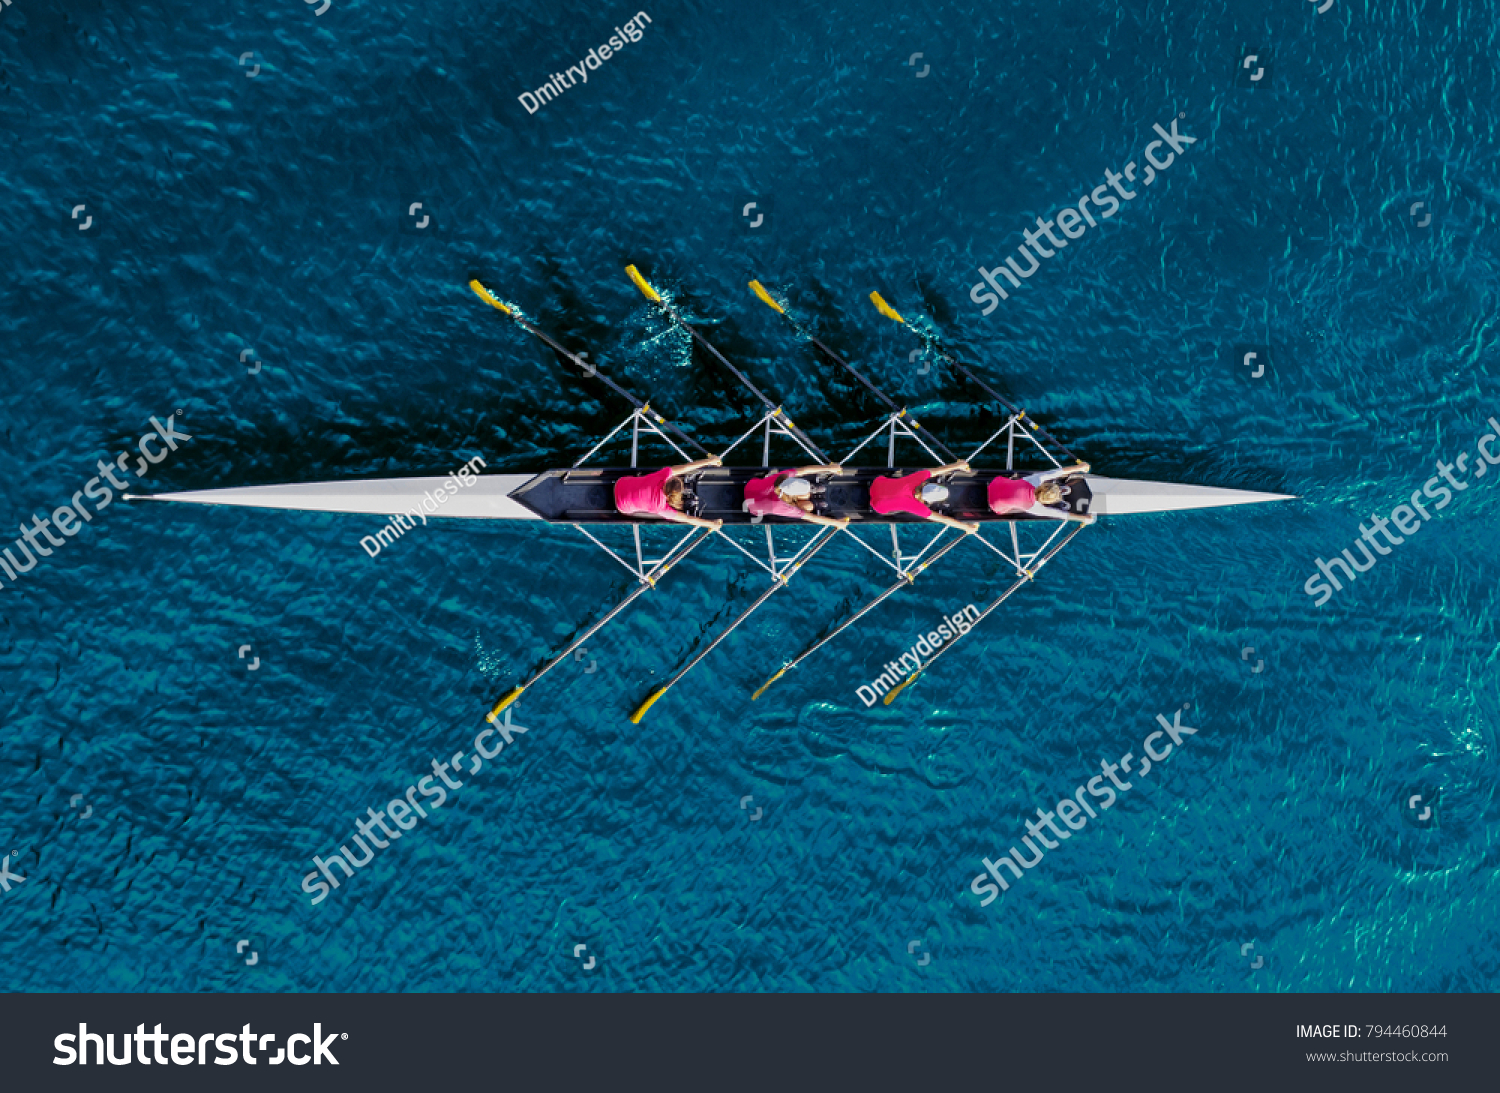 Women's rowing team on blue water, top view #794460844